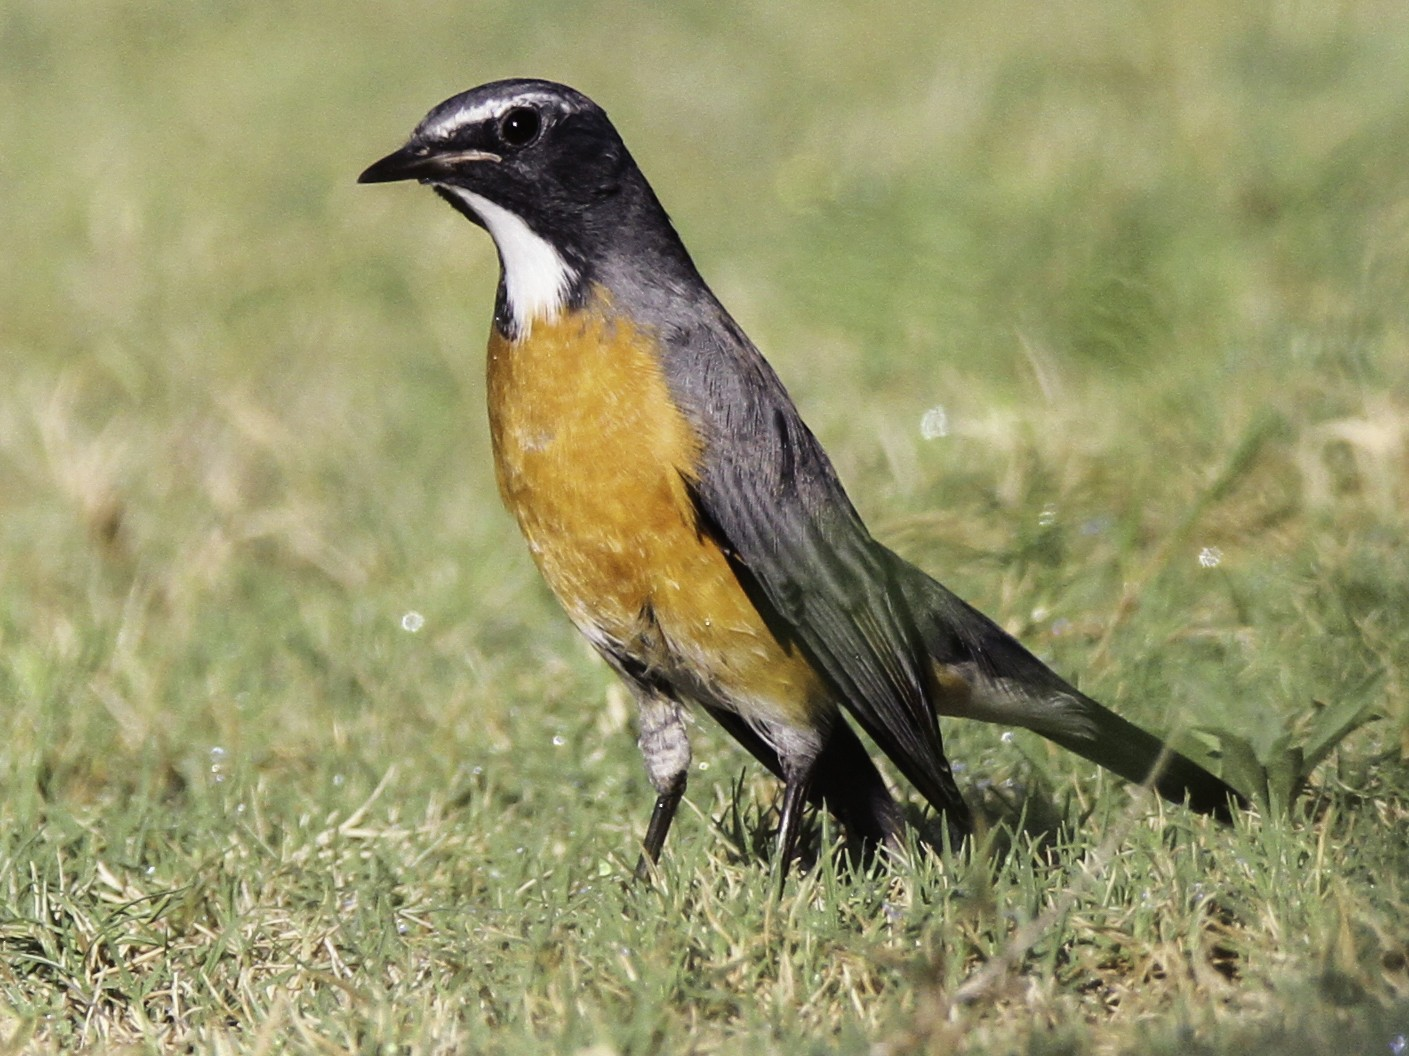 White-throated Robin - Oree Efroni Naor